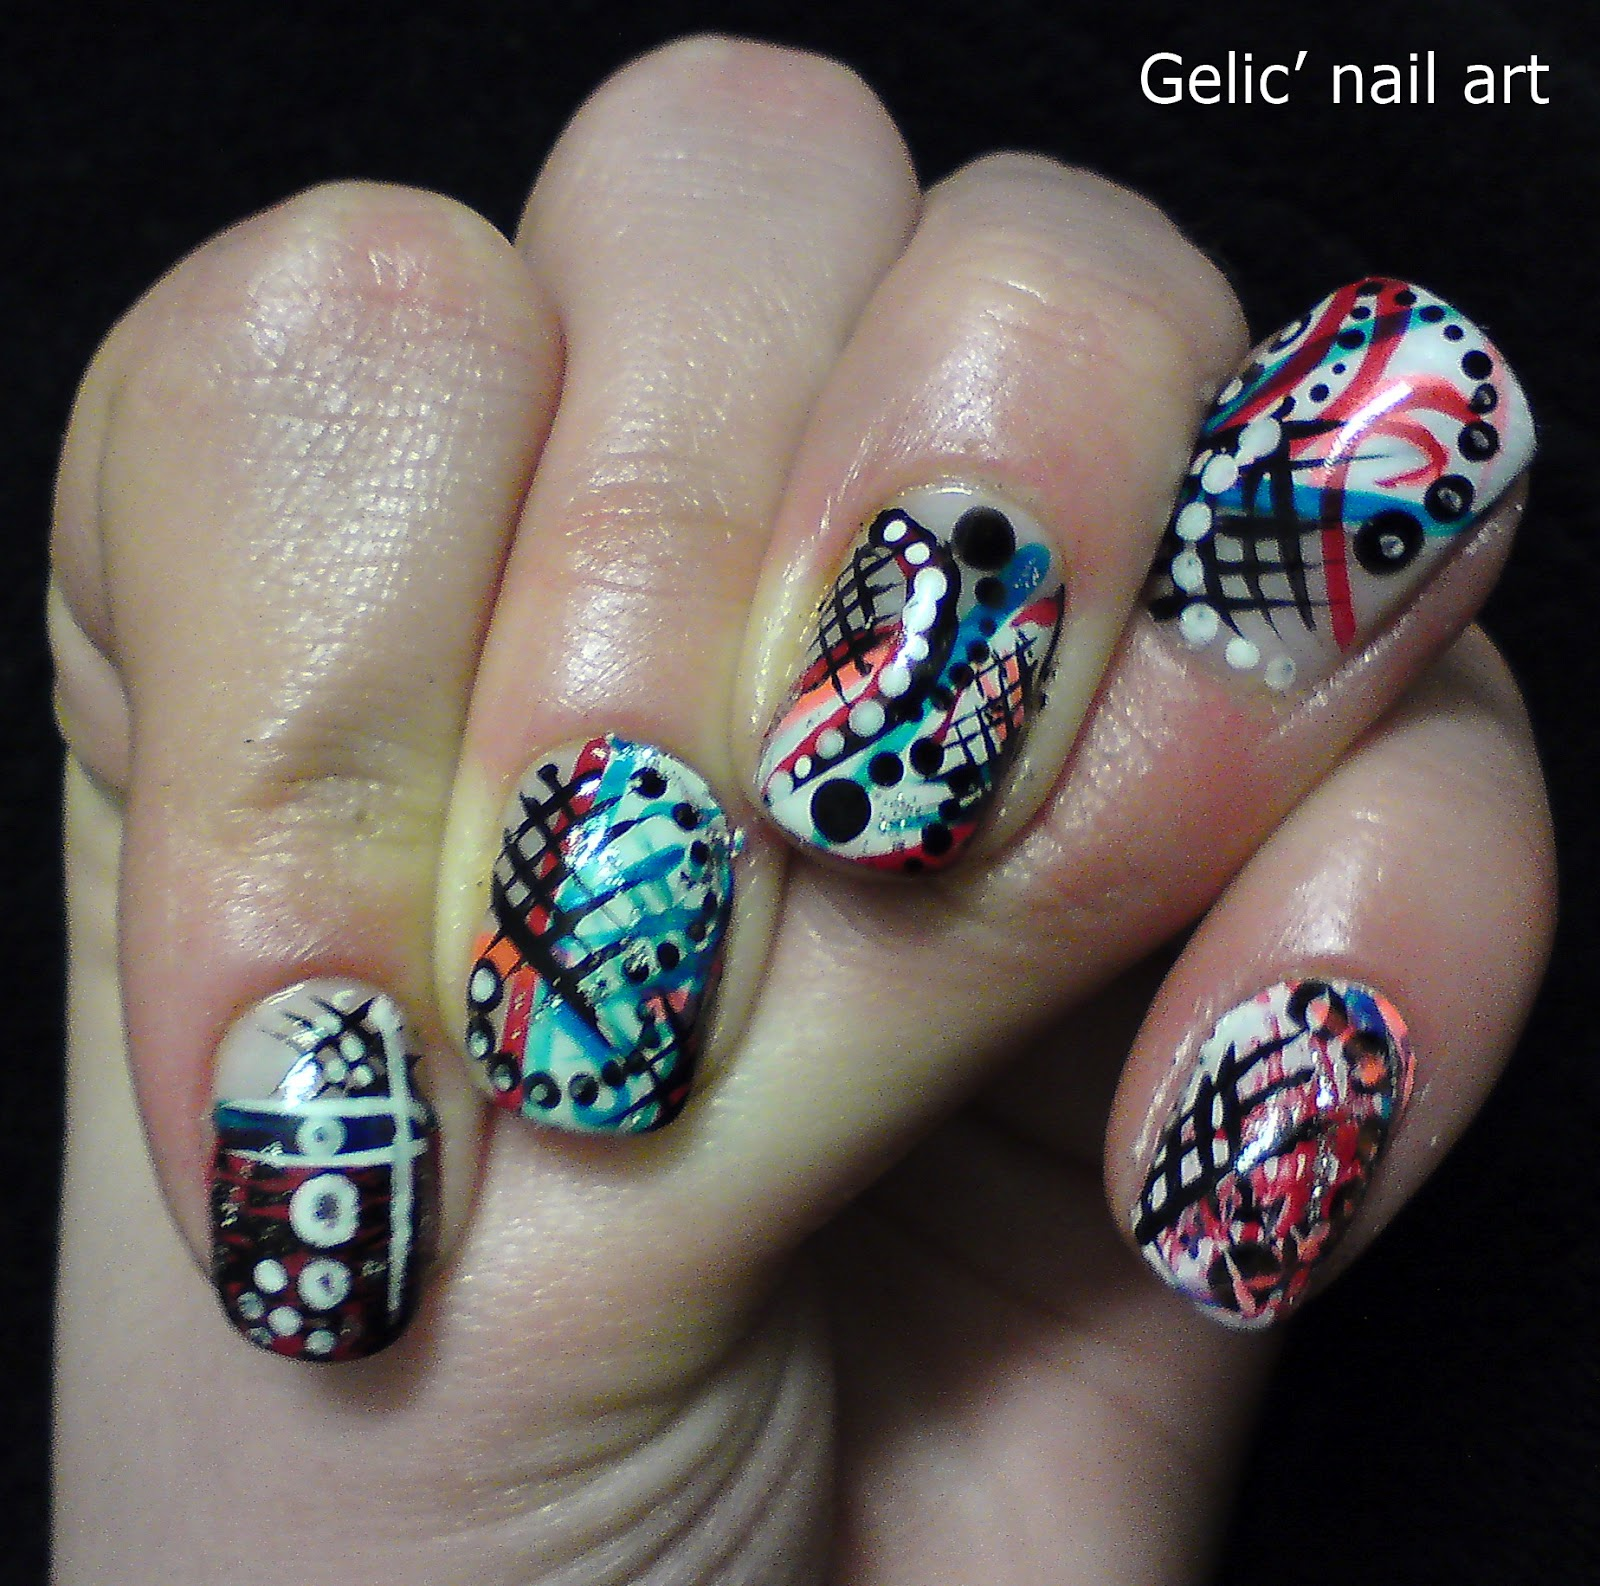 Gelic\' nail art: Dots and stripes mix nail art in white, red, black ...